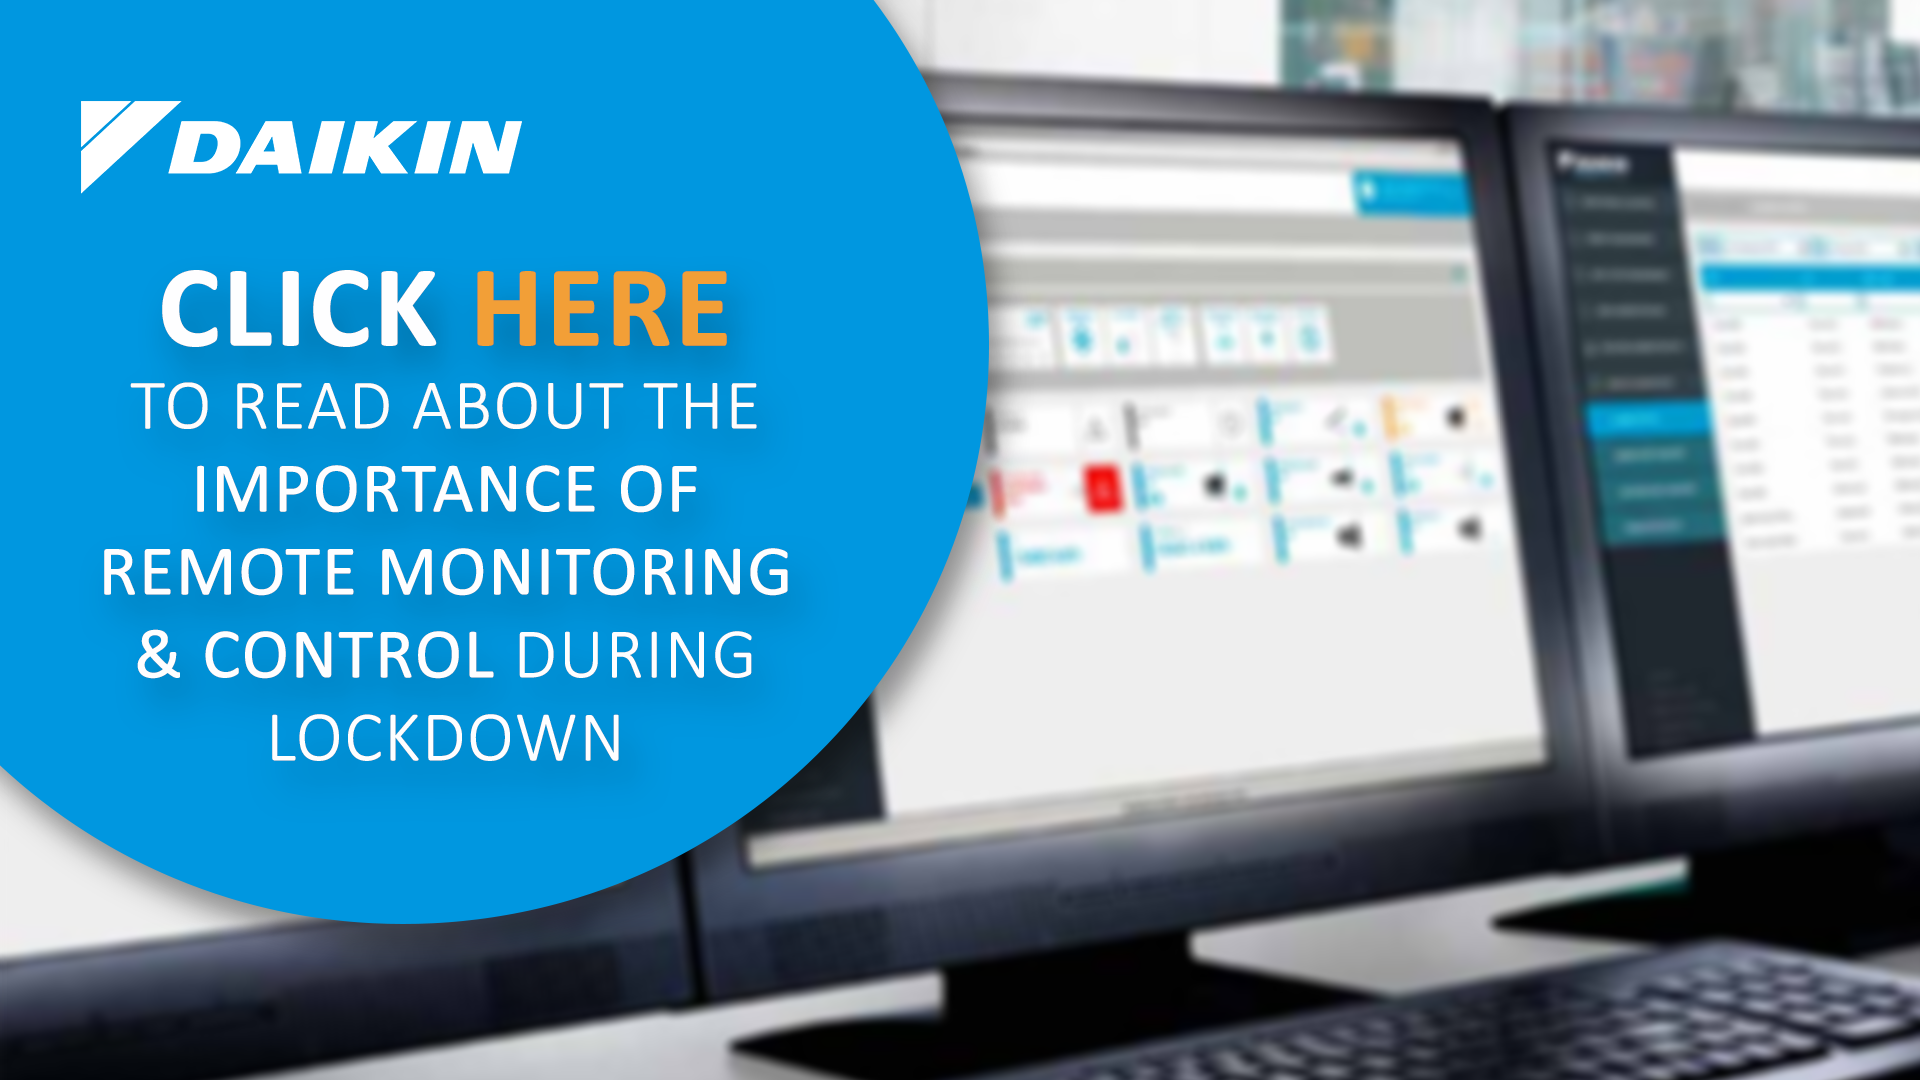 Remote monitoring & control during lockdown